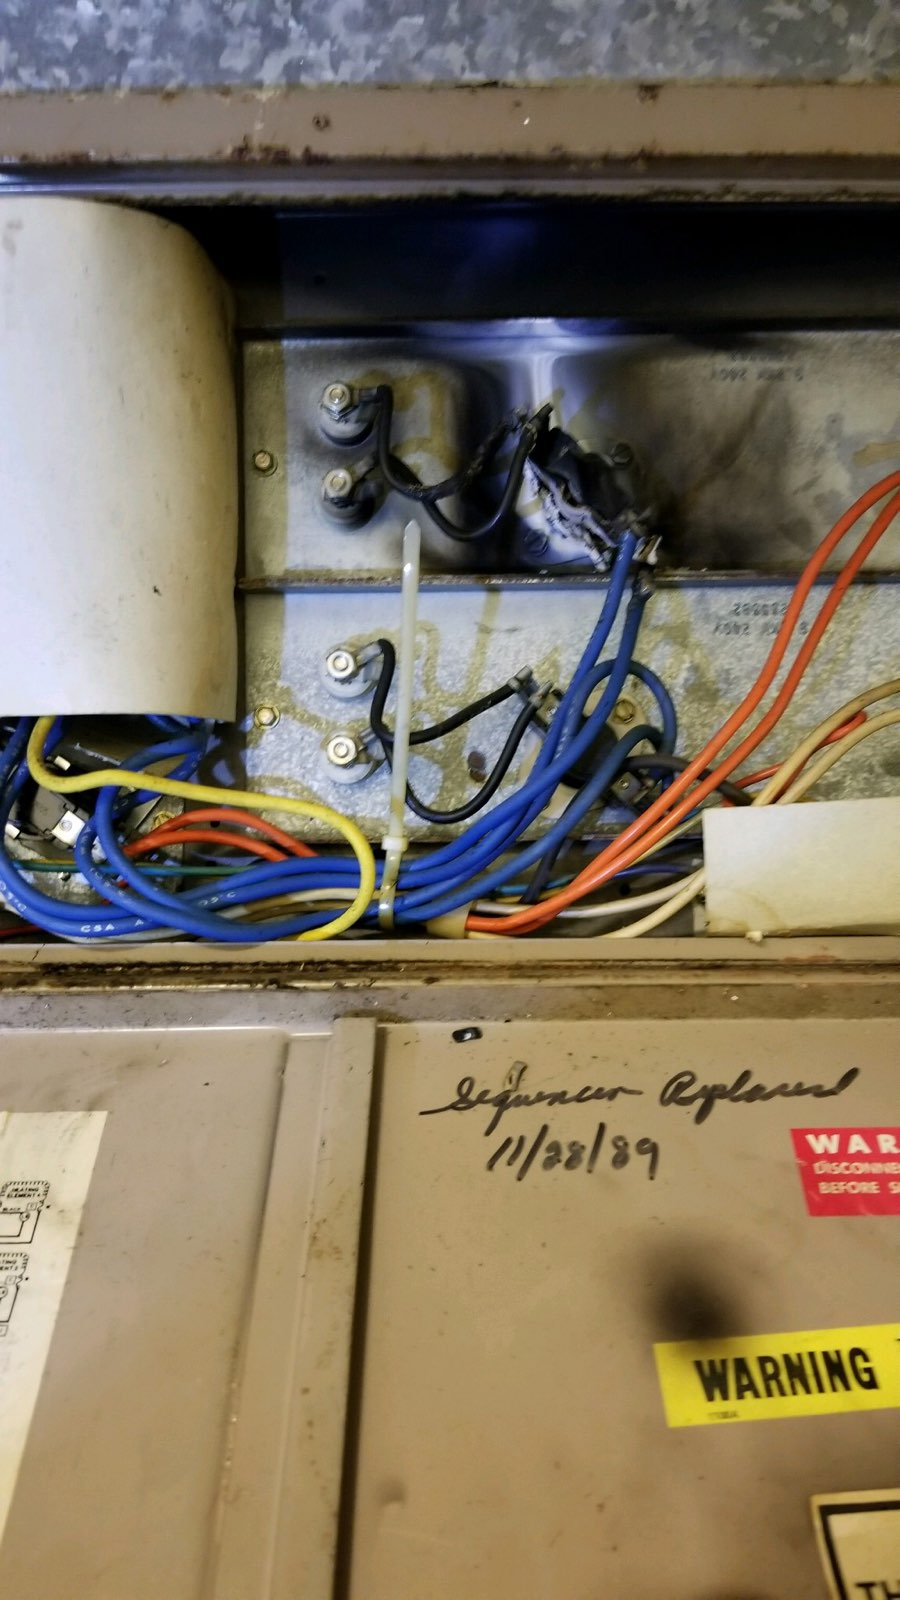 On 03/31/19, East Side Firefighters responded for a furnace on fire. Firefighters located an electrical component that burned up. The furnace filter was also almost completely blocked.